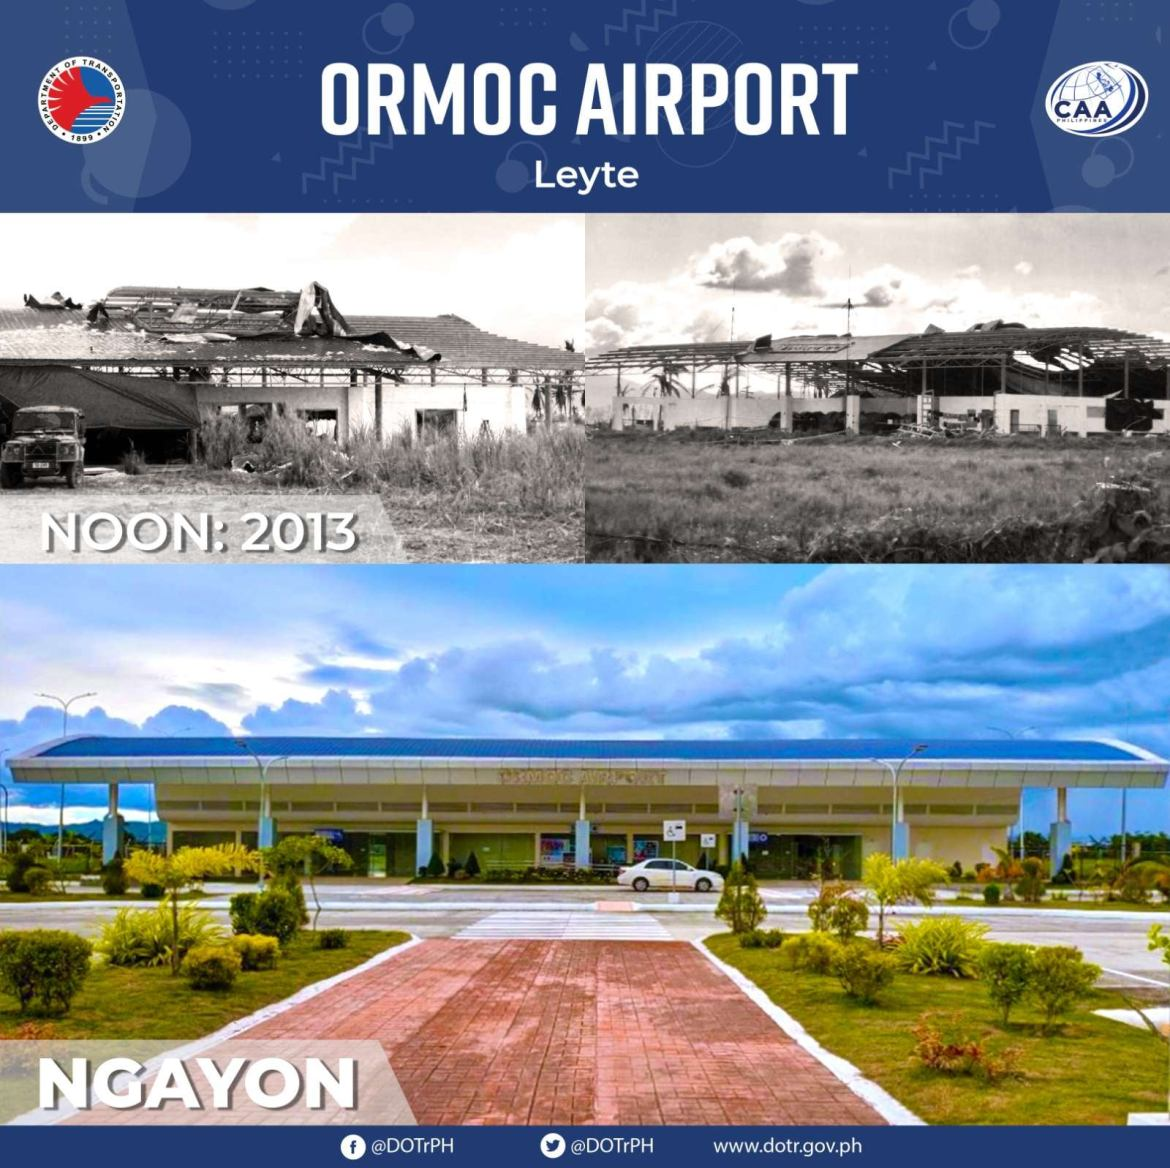 DOTR completes renovation works on Ormoc airport in Leyte